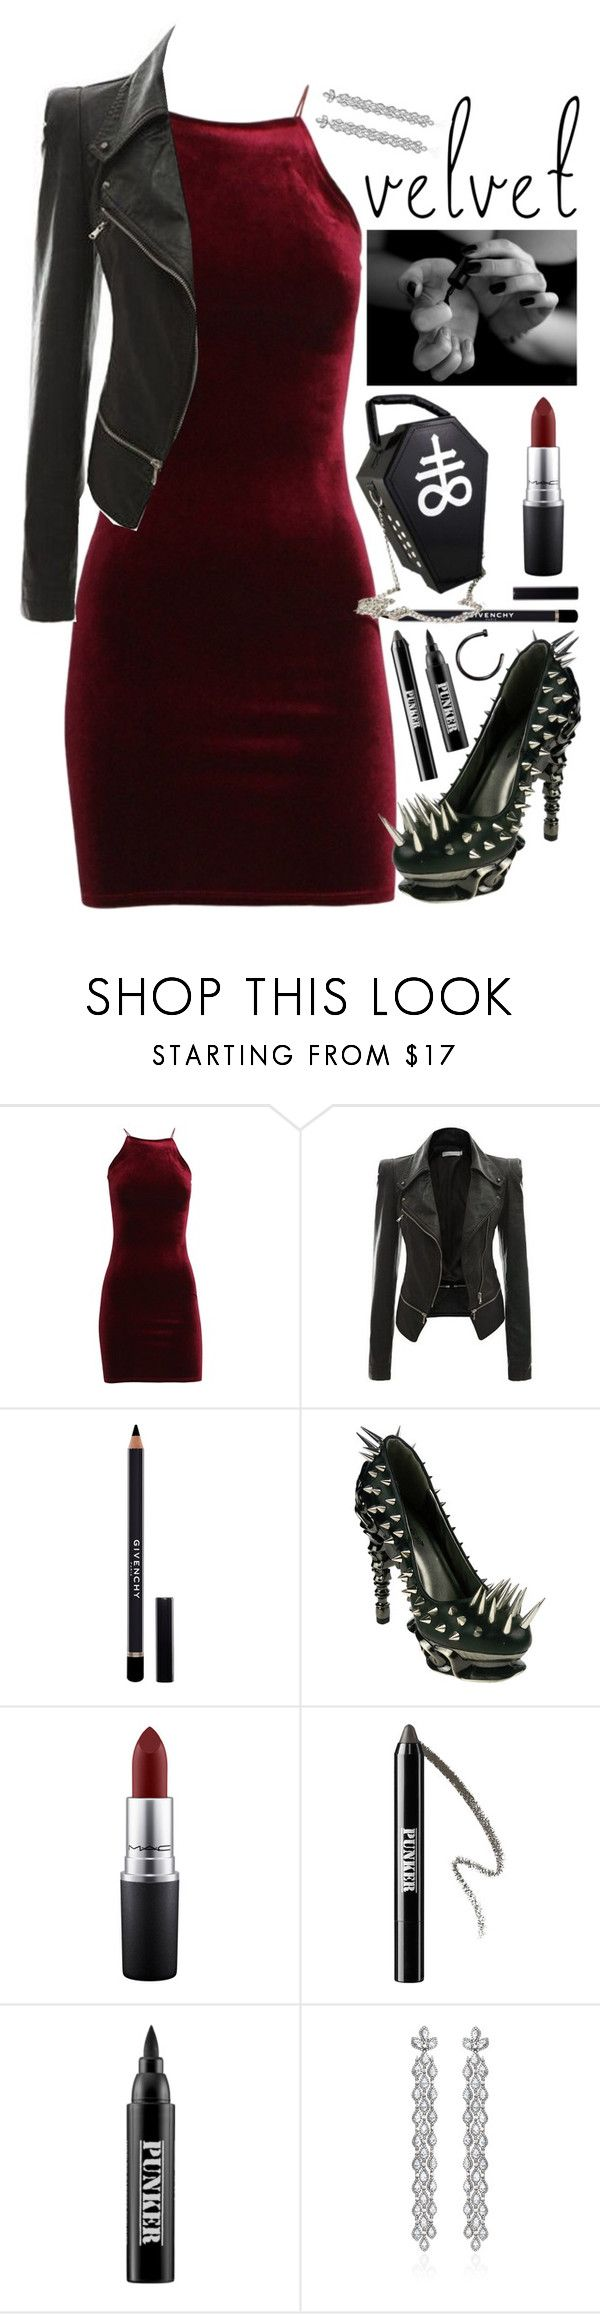 """553"" by anastaziah2014 ❤ liked on Polyvore featuring Givenchy, HADES, MAC Cosmetics, Ardency Inn and Bochic"